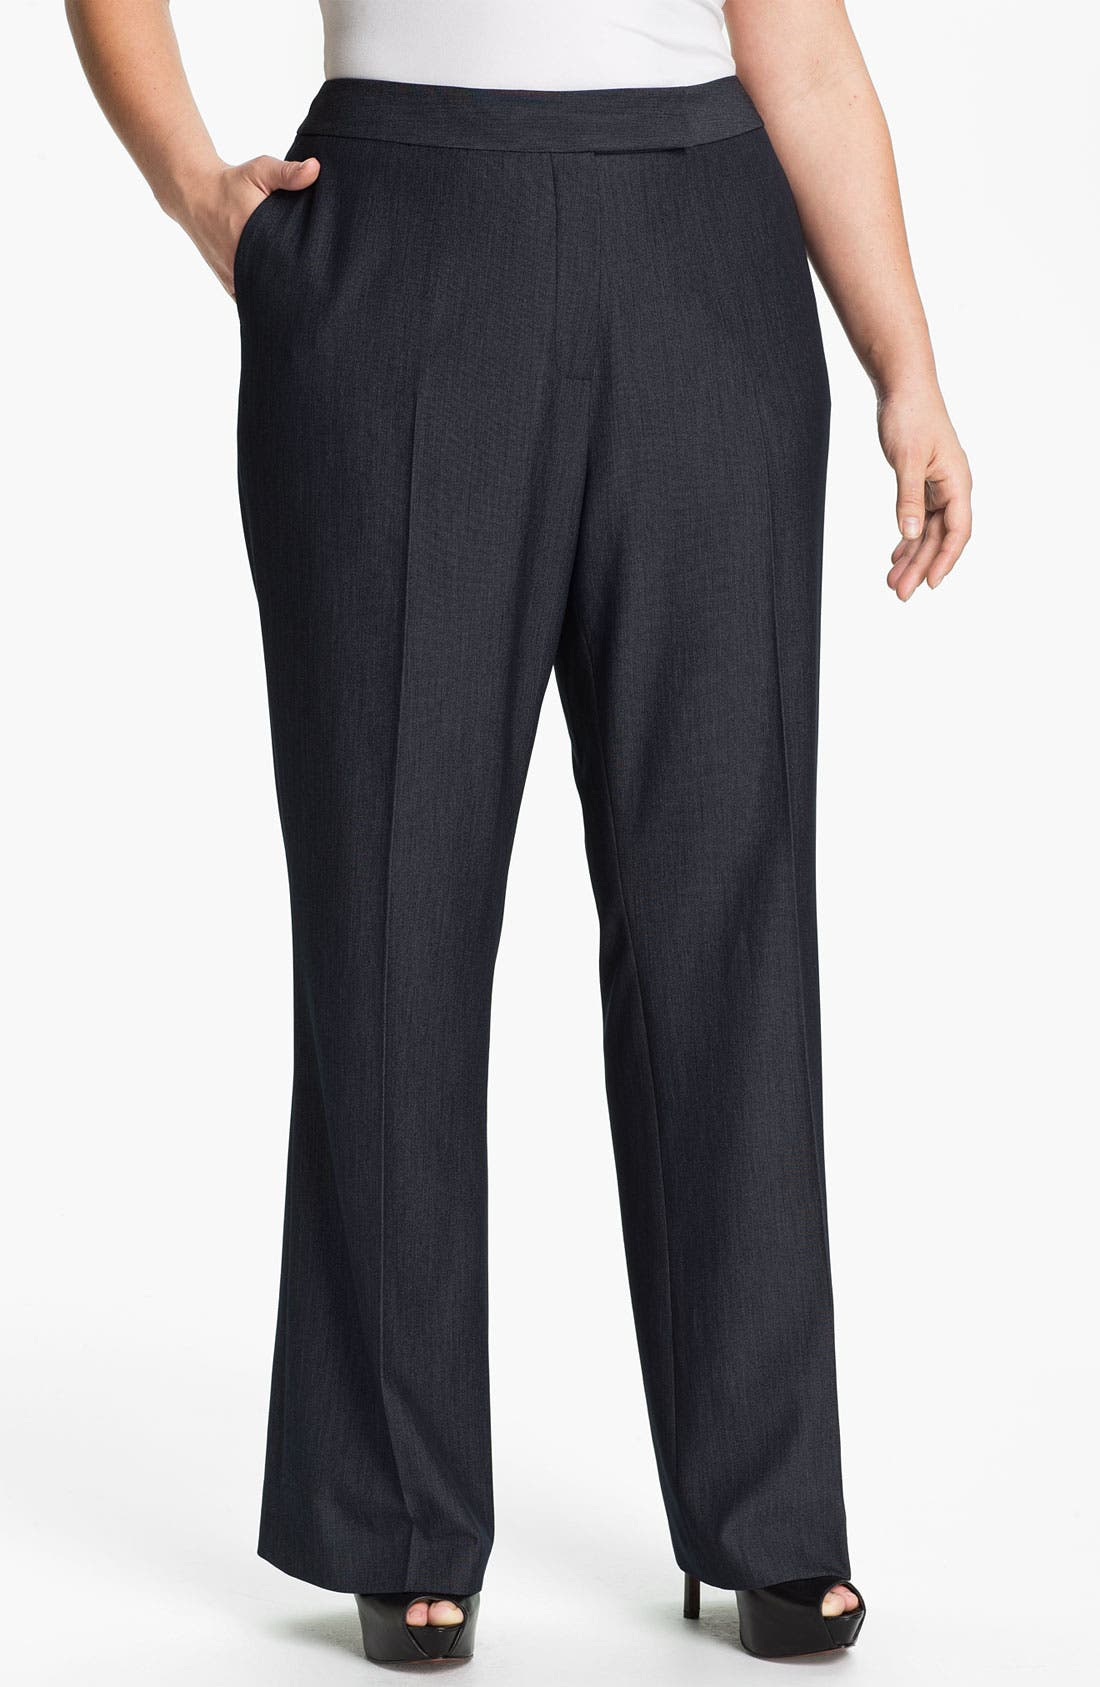 Alternate Image 1 Selected - Tahari Woman 'Merlin' Pants (Plus)